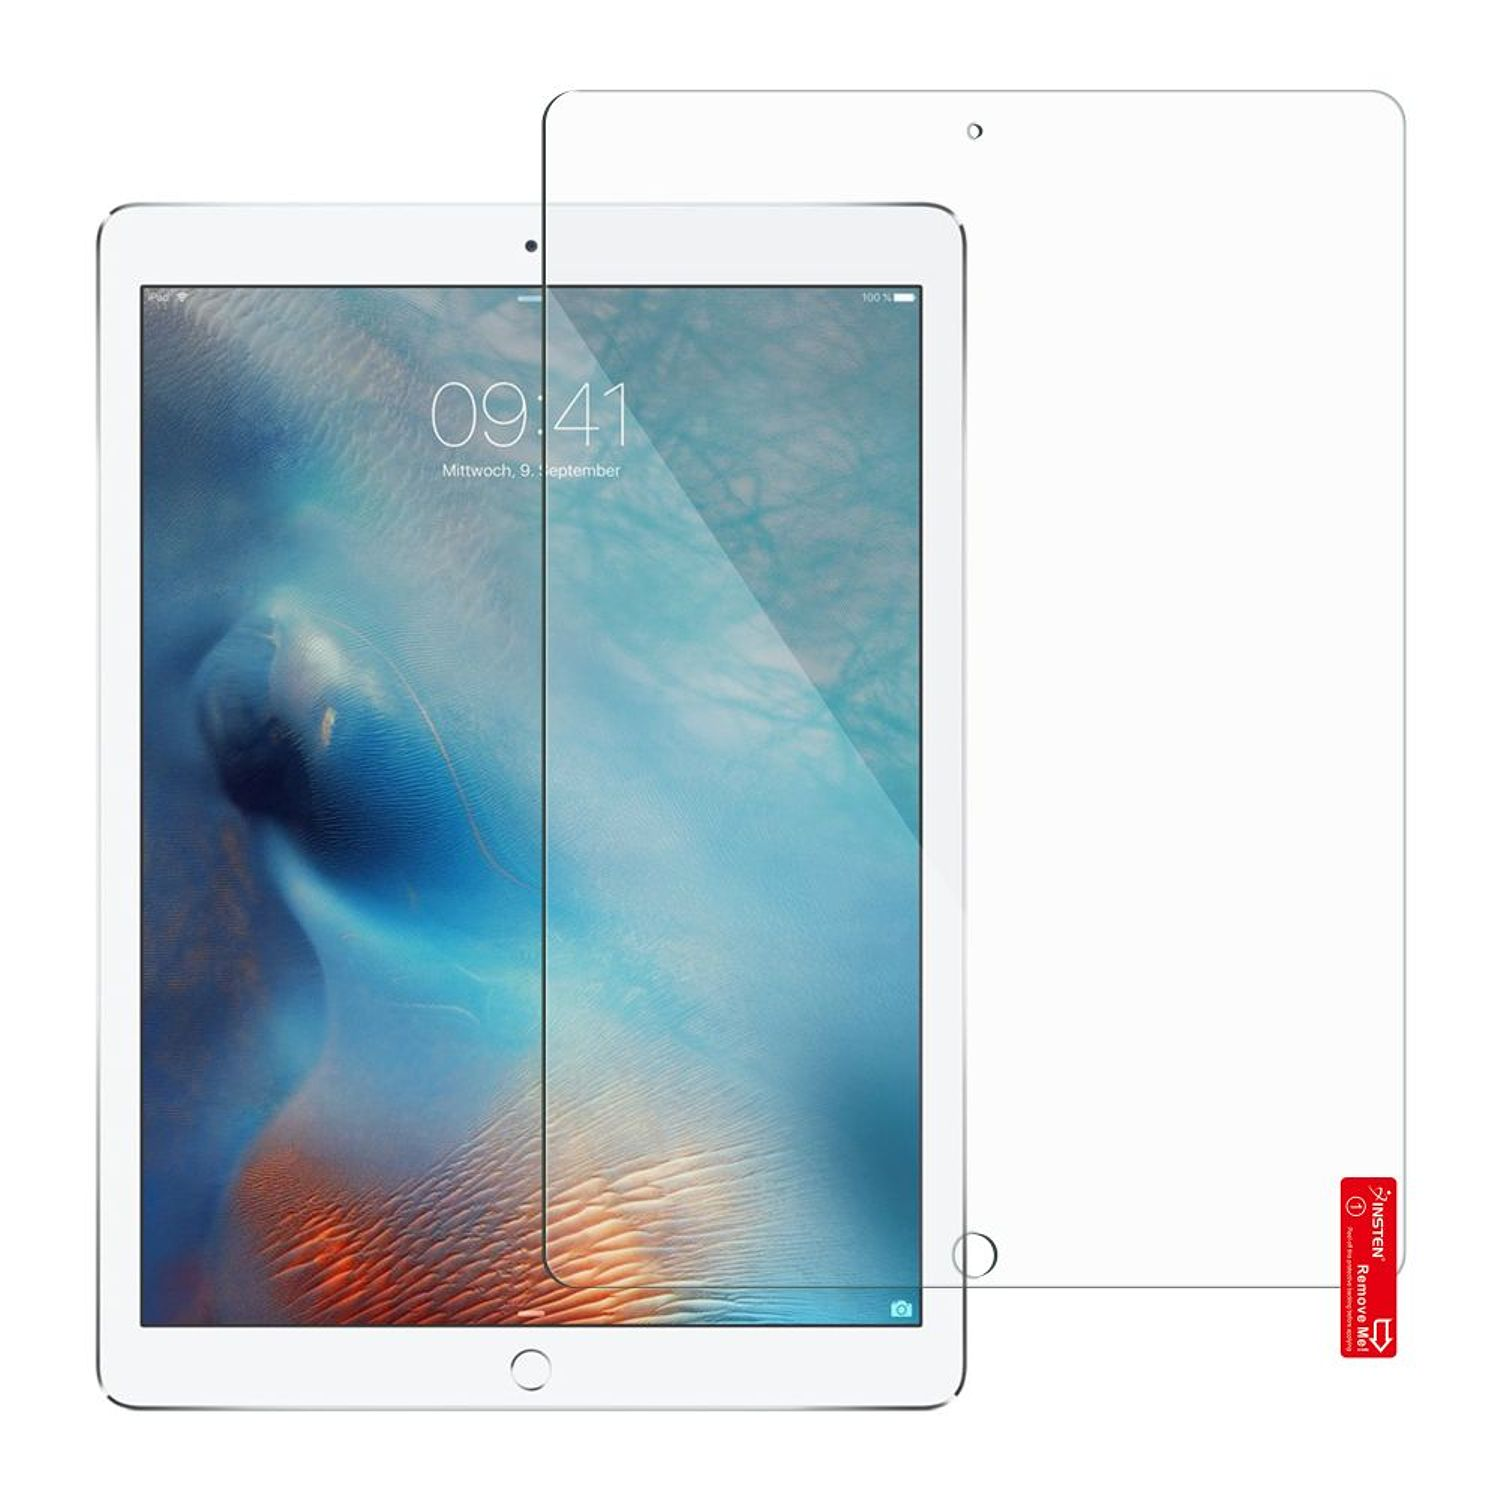 "iPad Pro 10.5 Screen Protector, by Insten Clear Fully Protect Screen Protector LCD Film For Apple iPad Pro 10.5"" (Anti-Scratch, Bubble-free)"